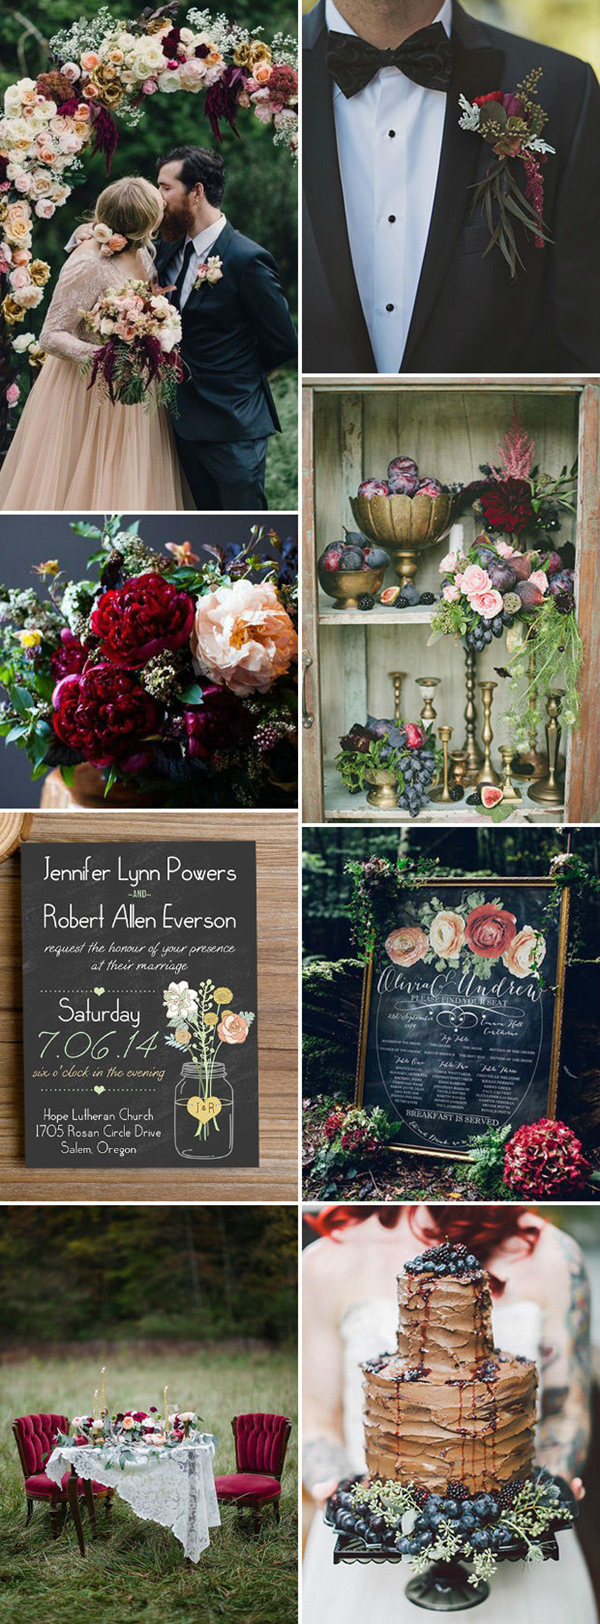 berry-red-and-black-inspiration-woodland-wedding-ideas